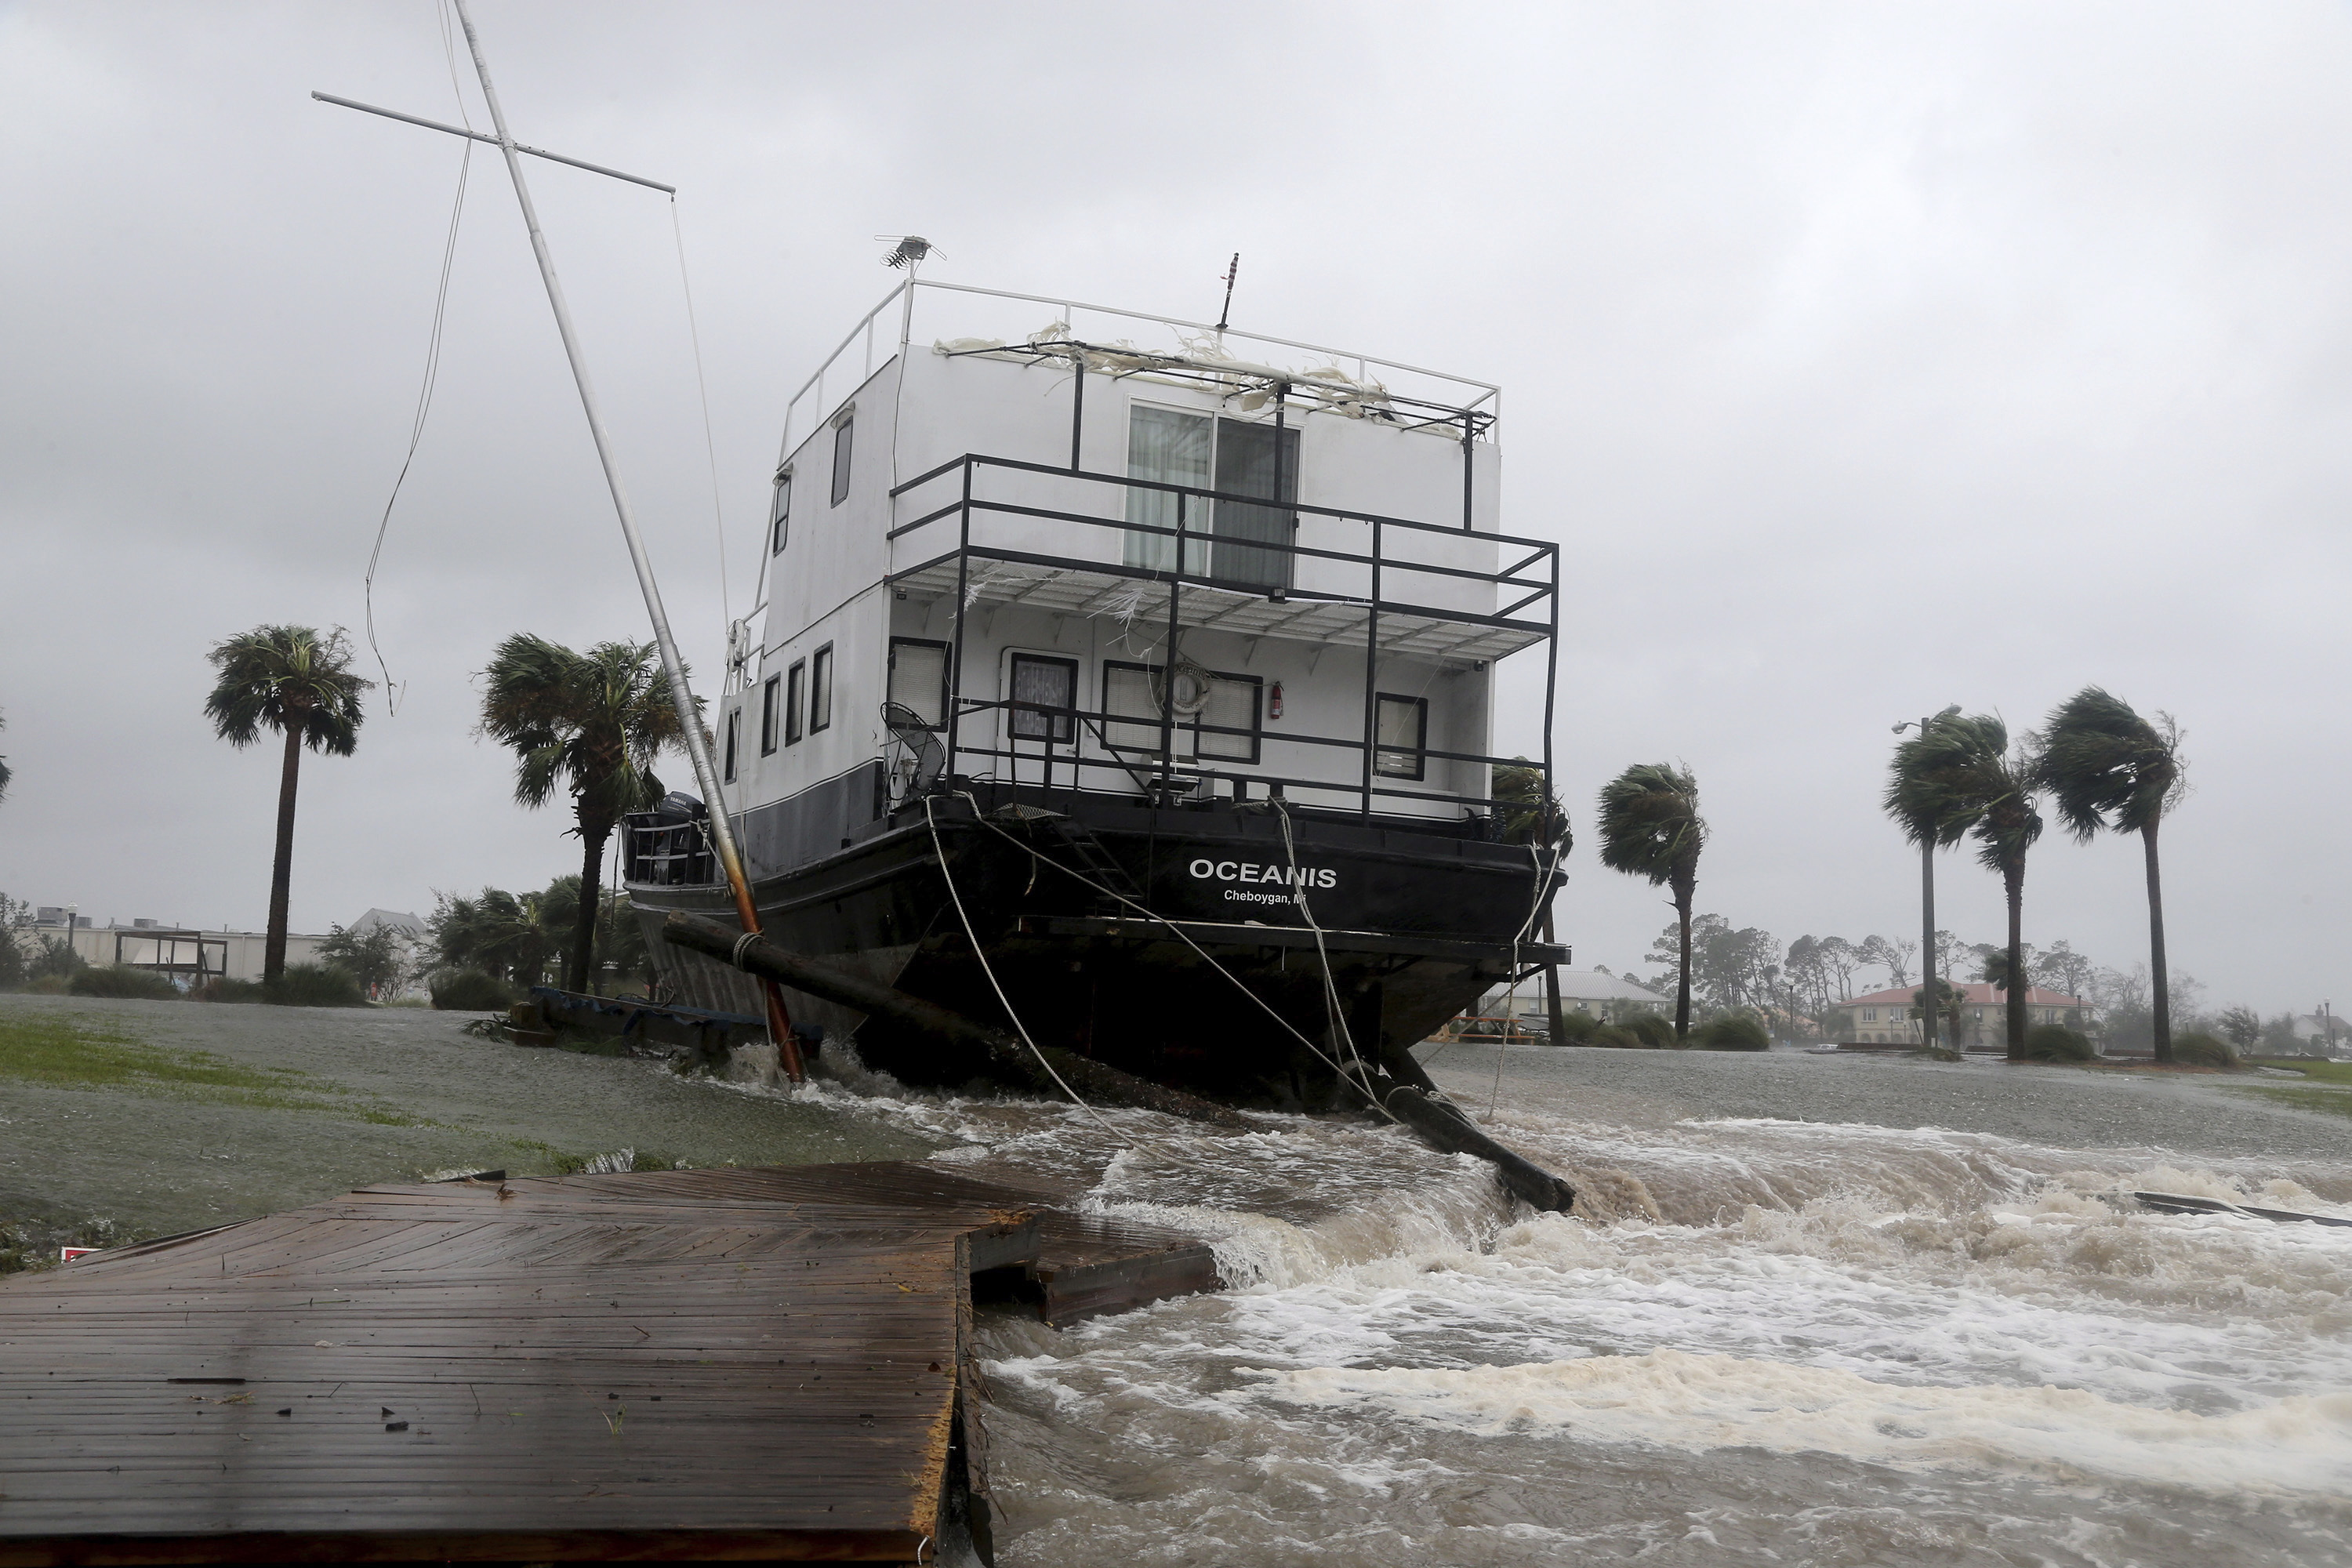 Death Toll From Michael Rises to at Least 13